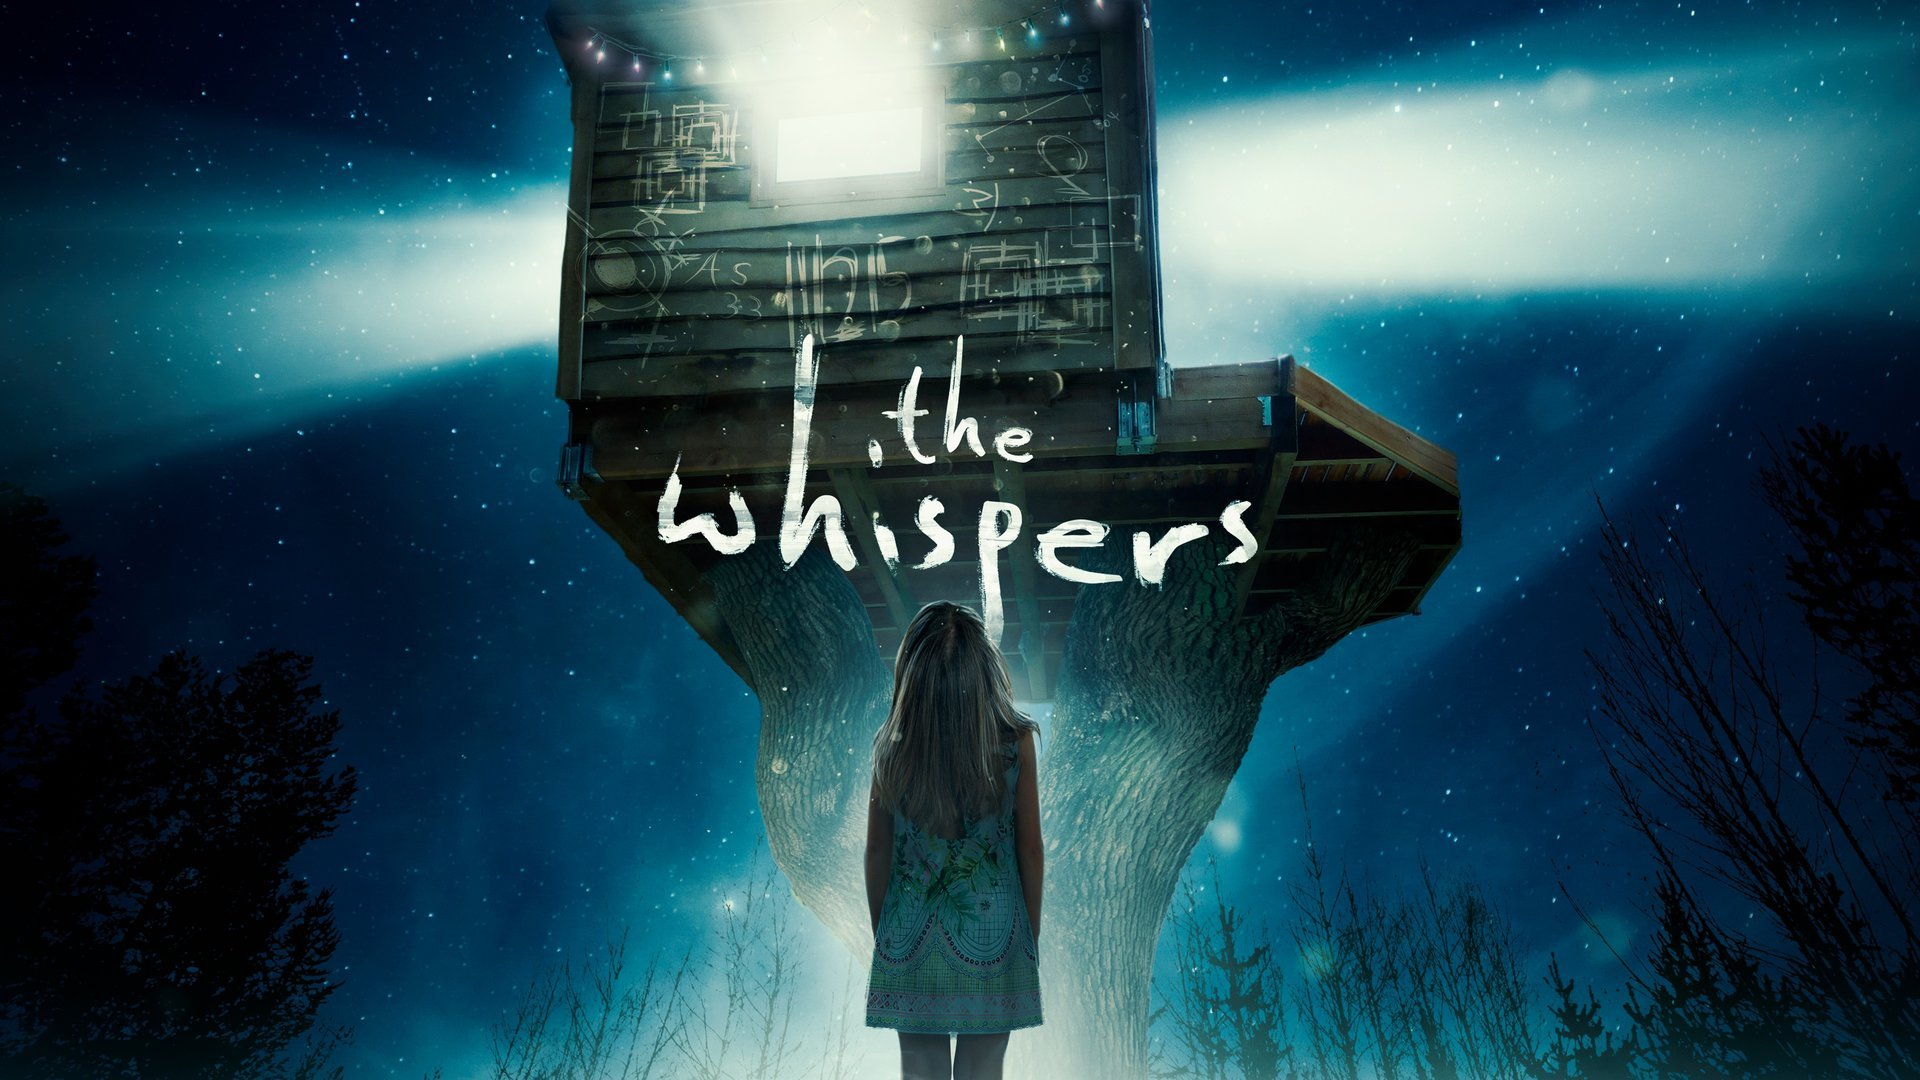 The Whispers (ABC)